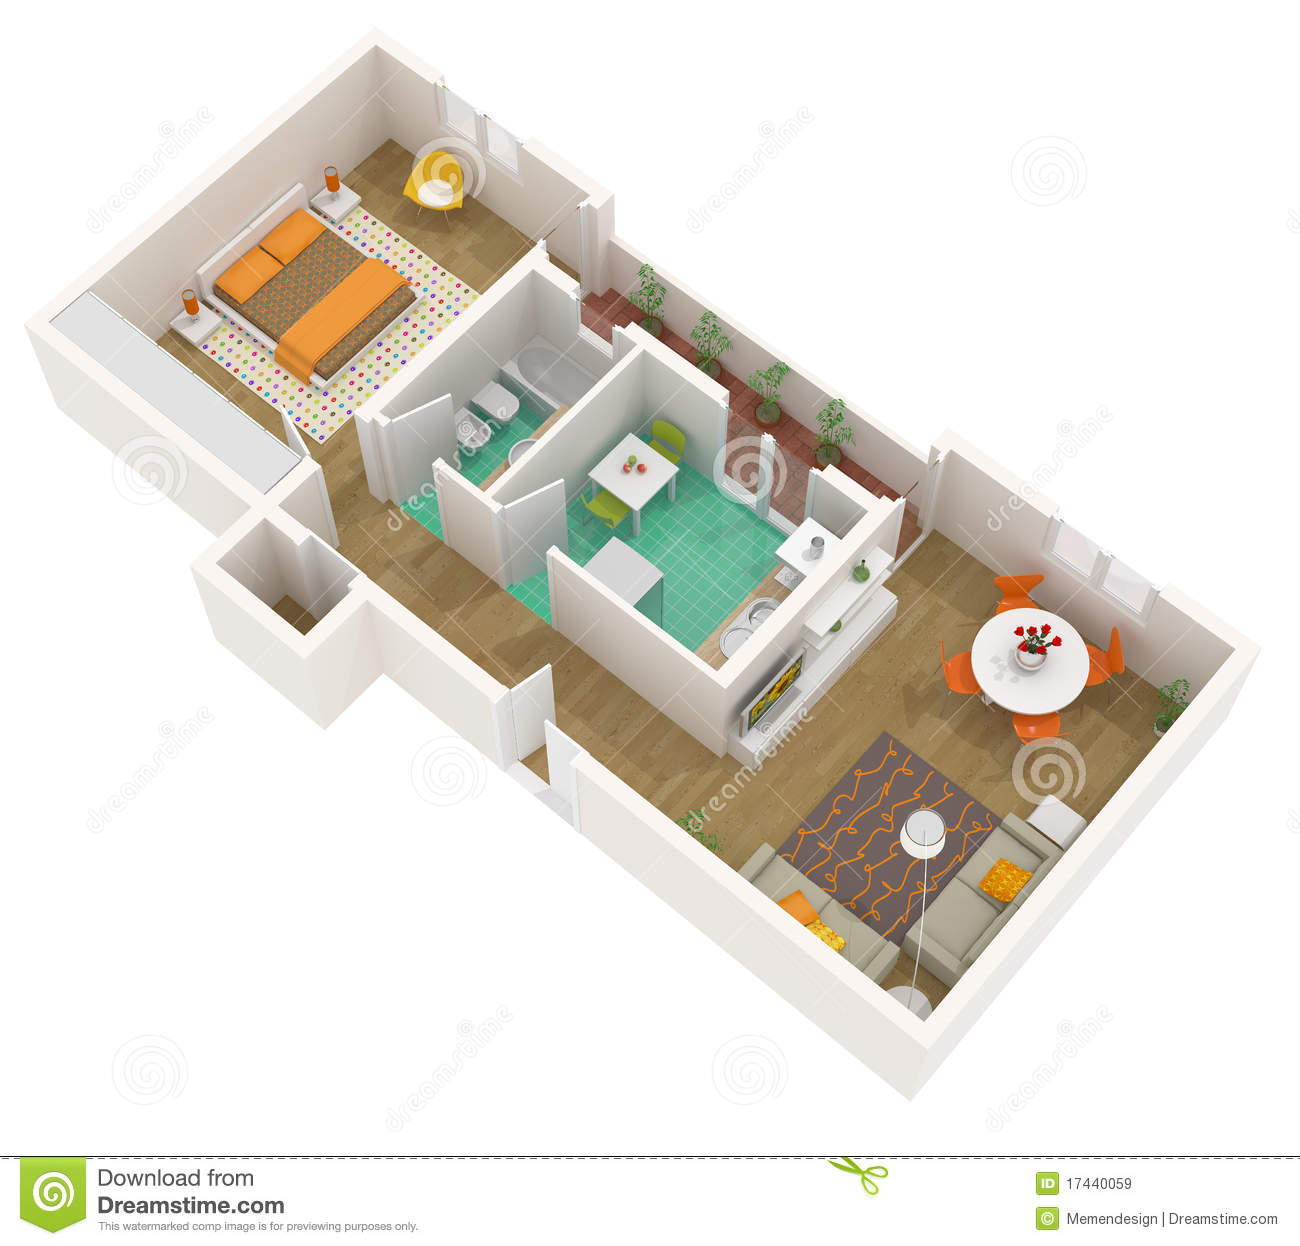 3d floor plan apartment - 3d Floor Plan Free